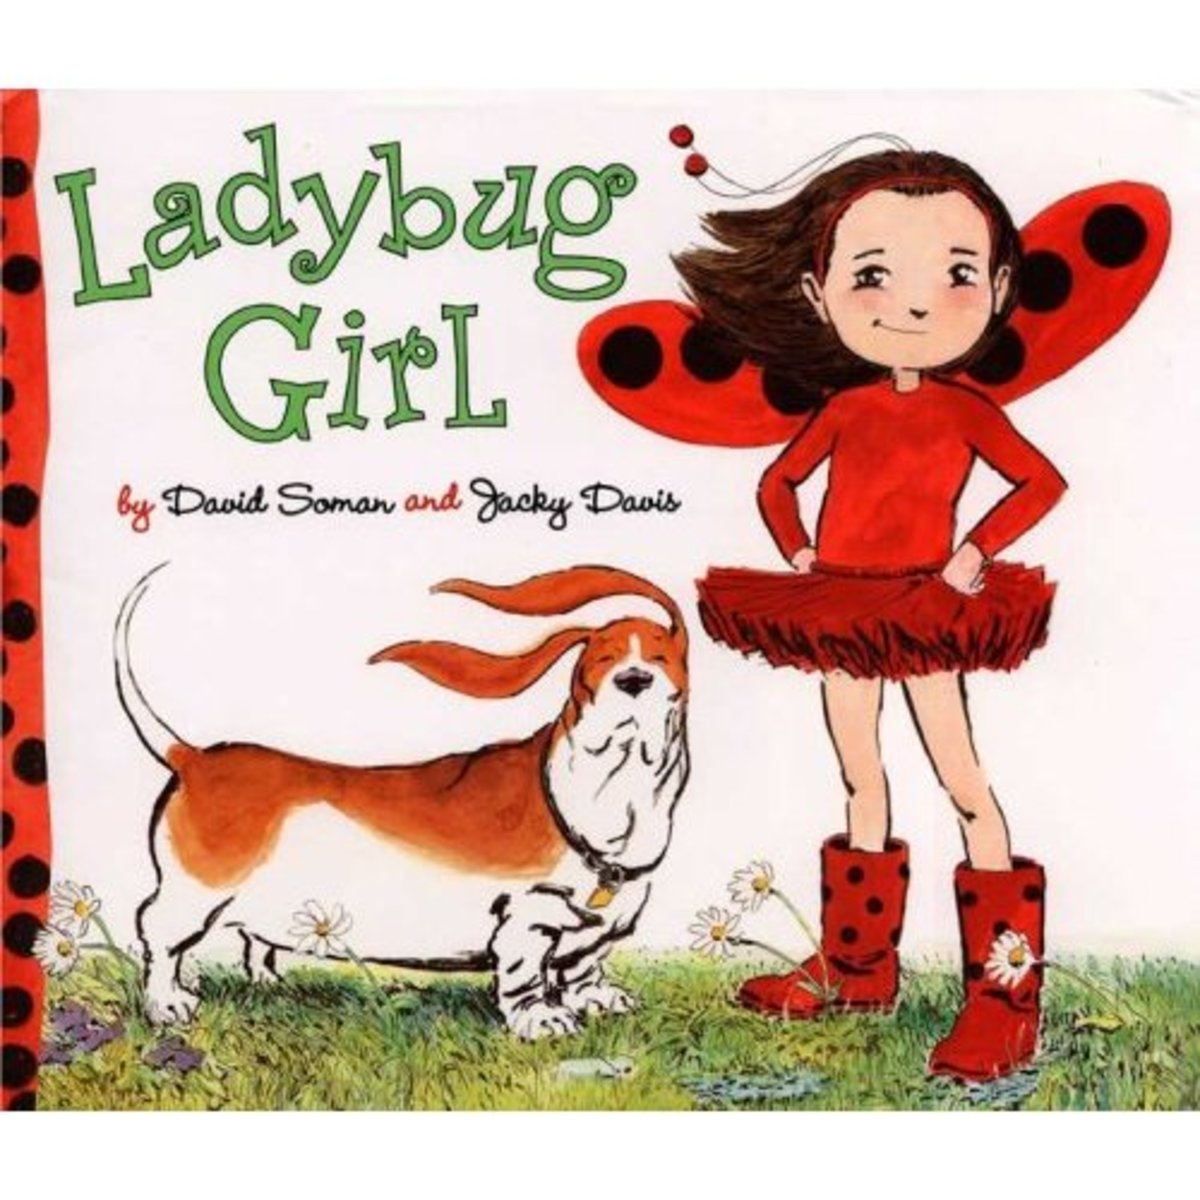 Ladybug Girl by David Soman and Jacky Davis